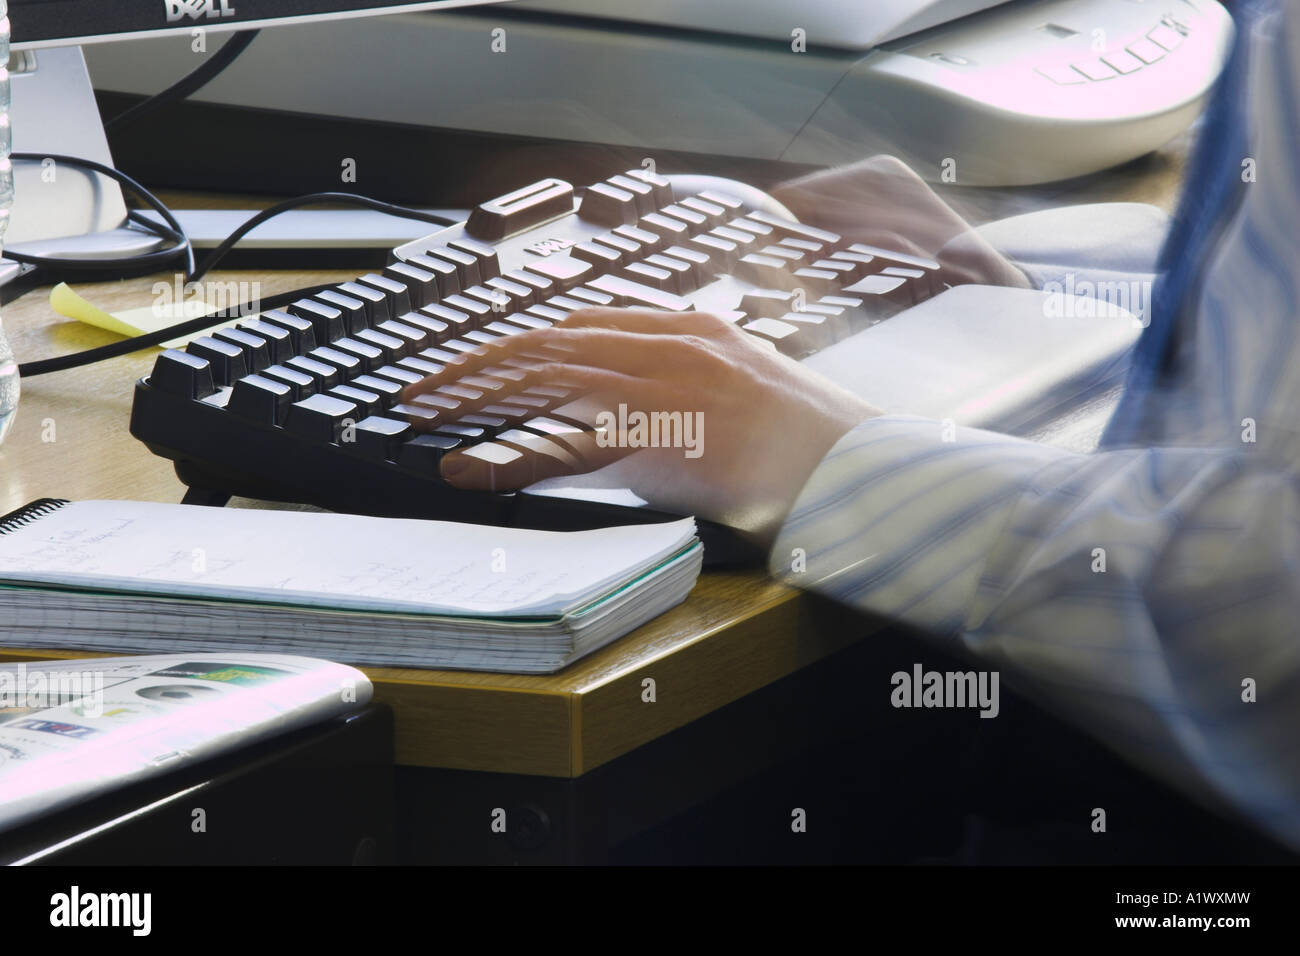 Blurred fingers using computer keyboard - Stock Image